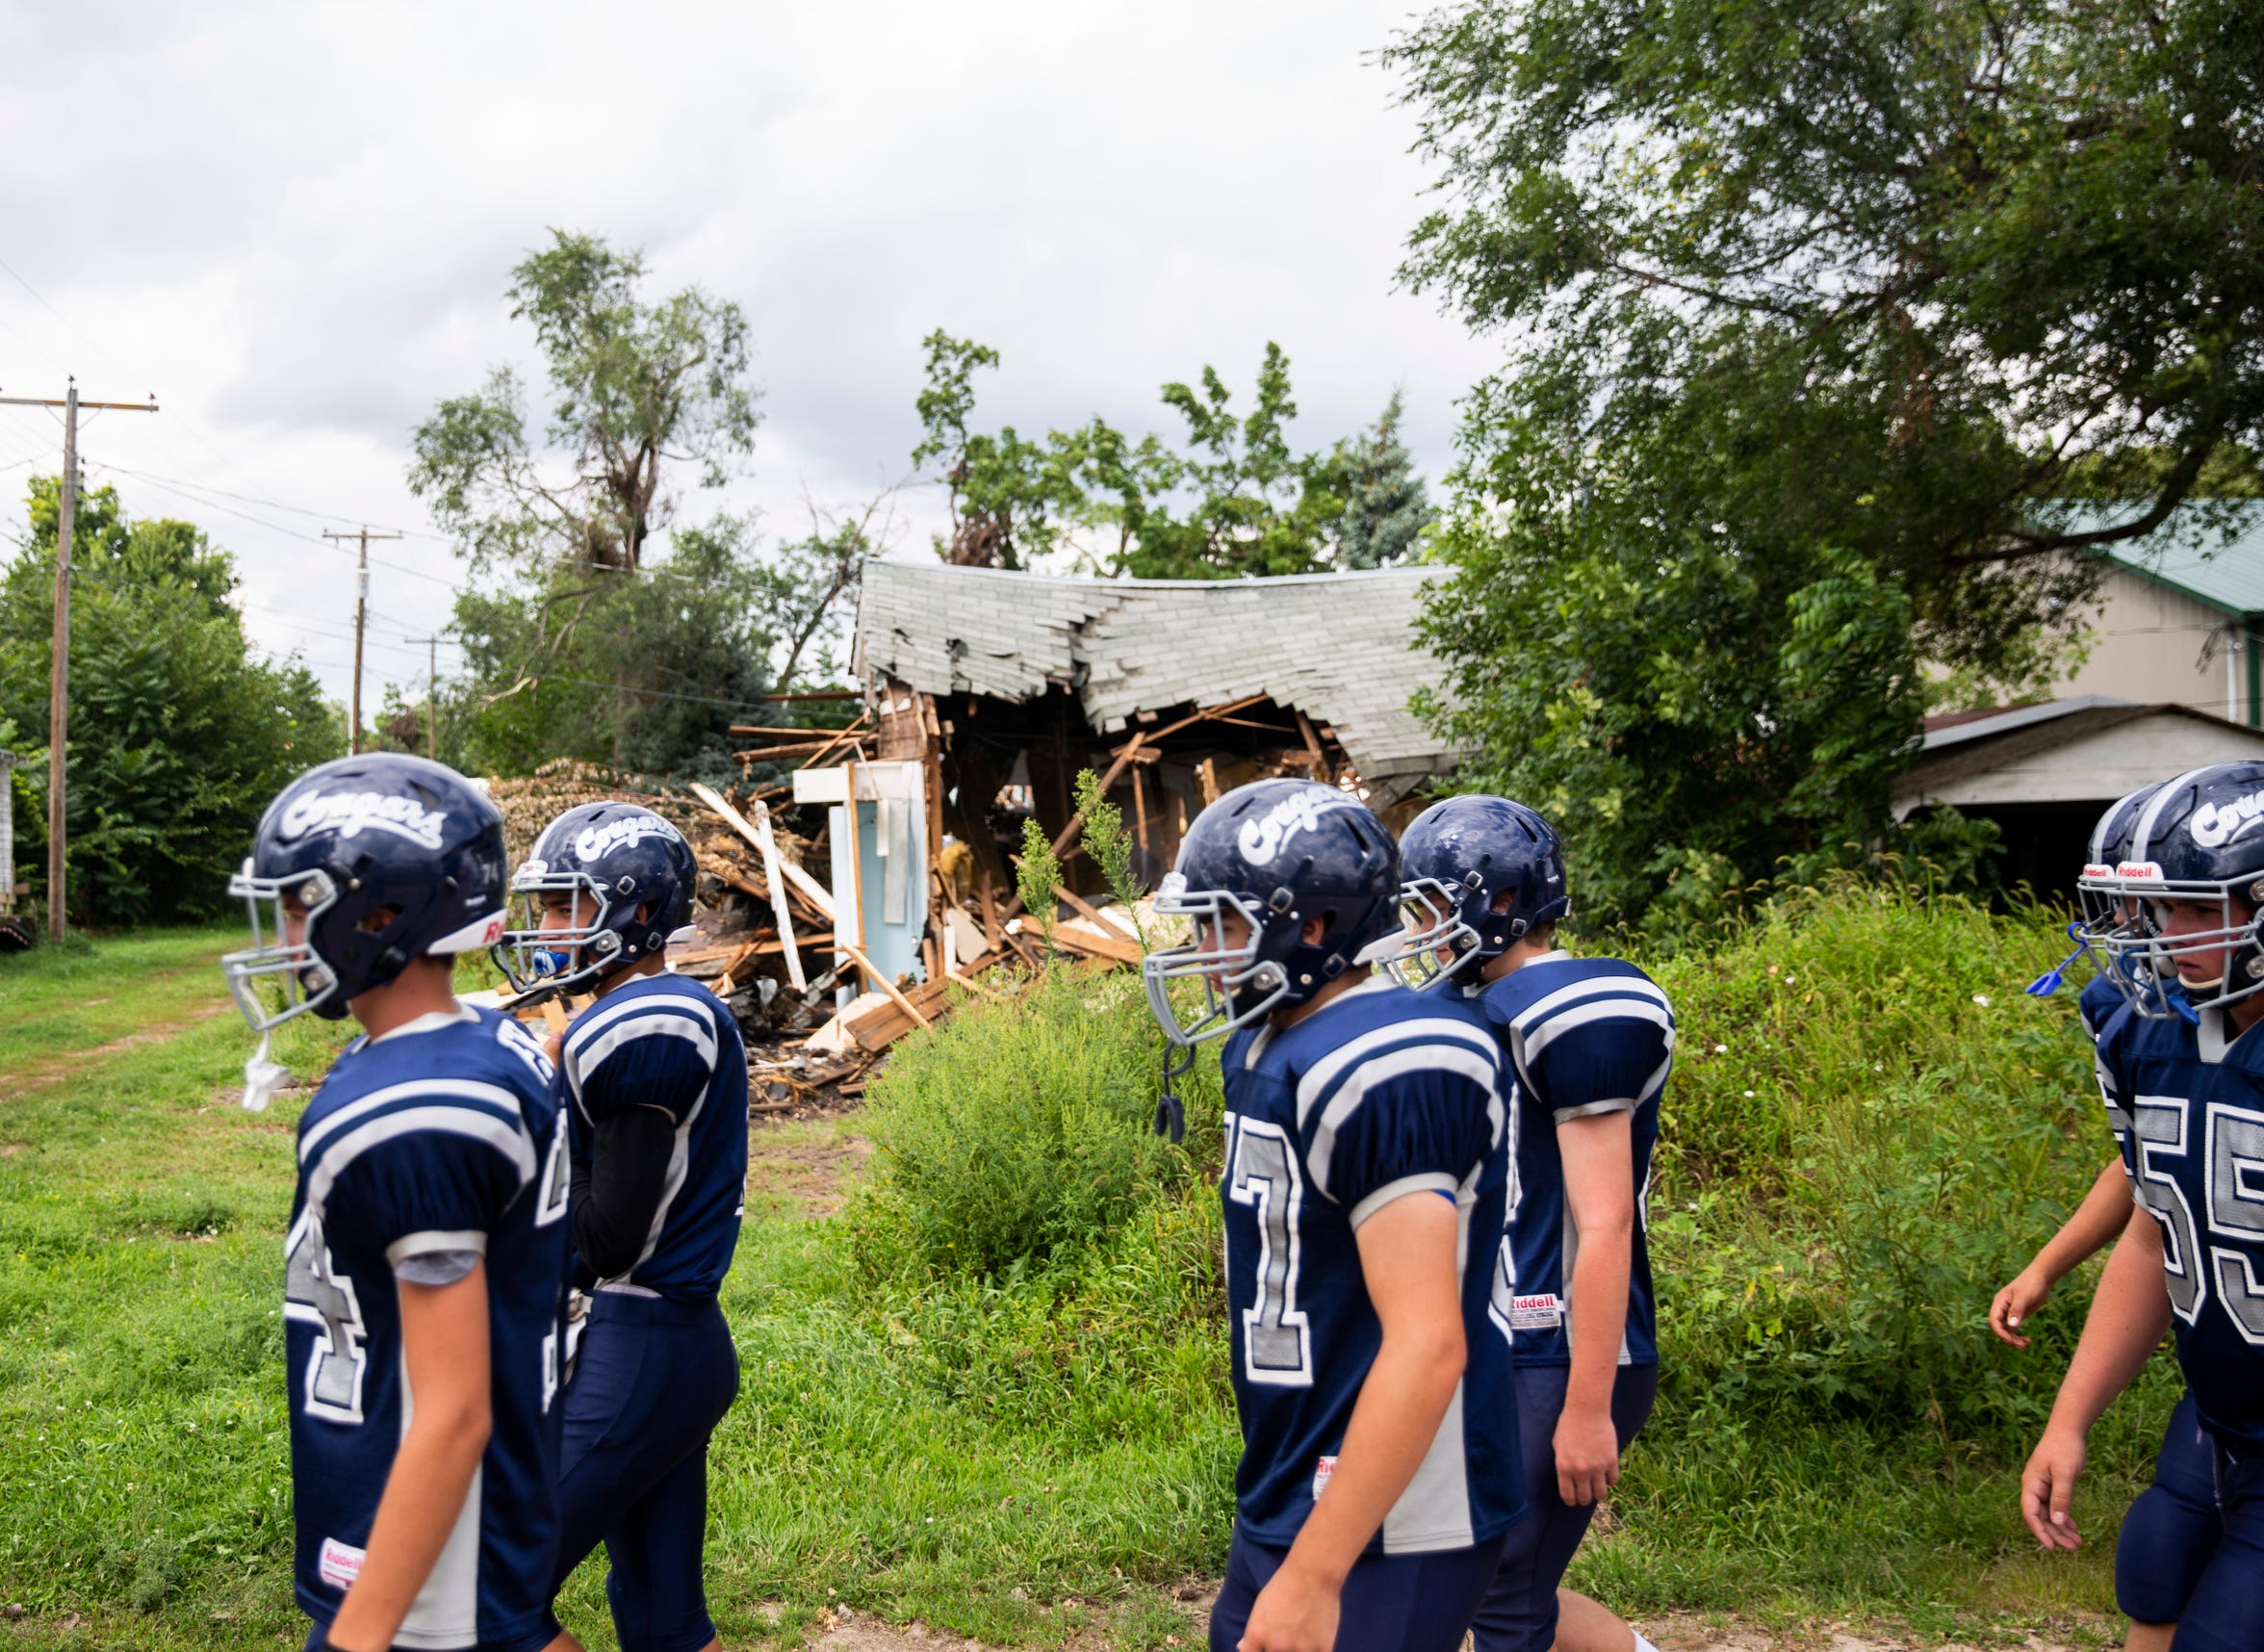 The Burke High School football team walks to Tolstedt field, Friday, Aug. 23 2019 in Burke. A tornado ripped through Burke destroying part of the high school earlier that month.